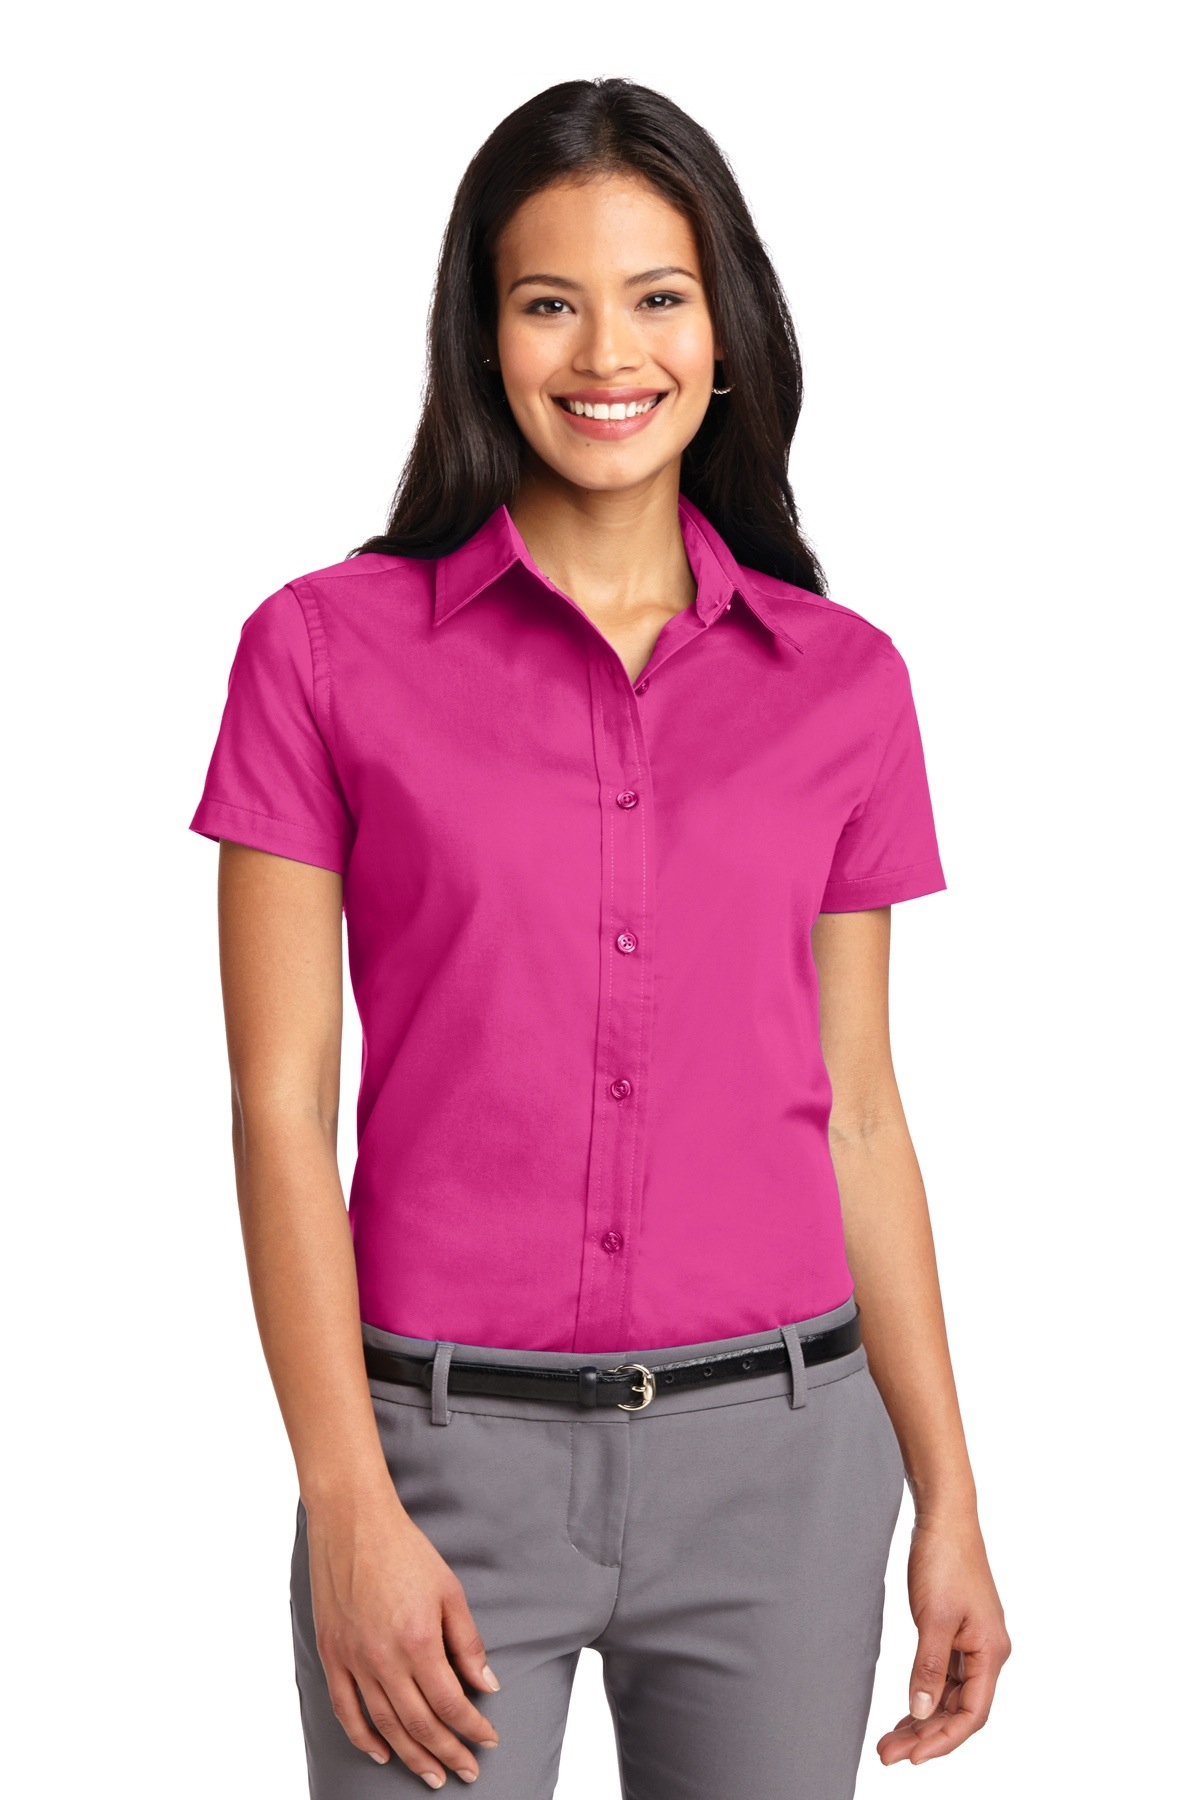 L508 ladies Easy Care short-sleeve Shirt Port Authority